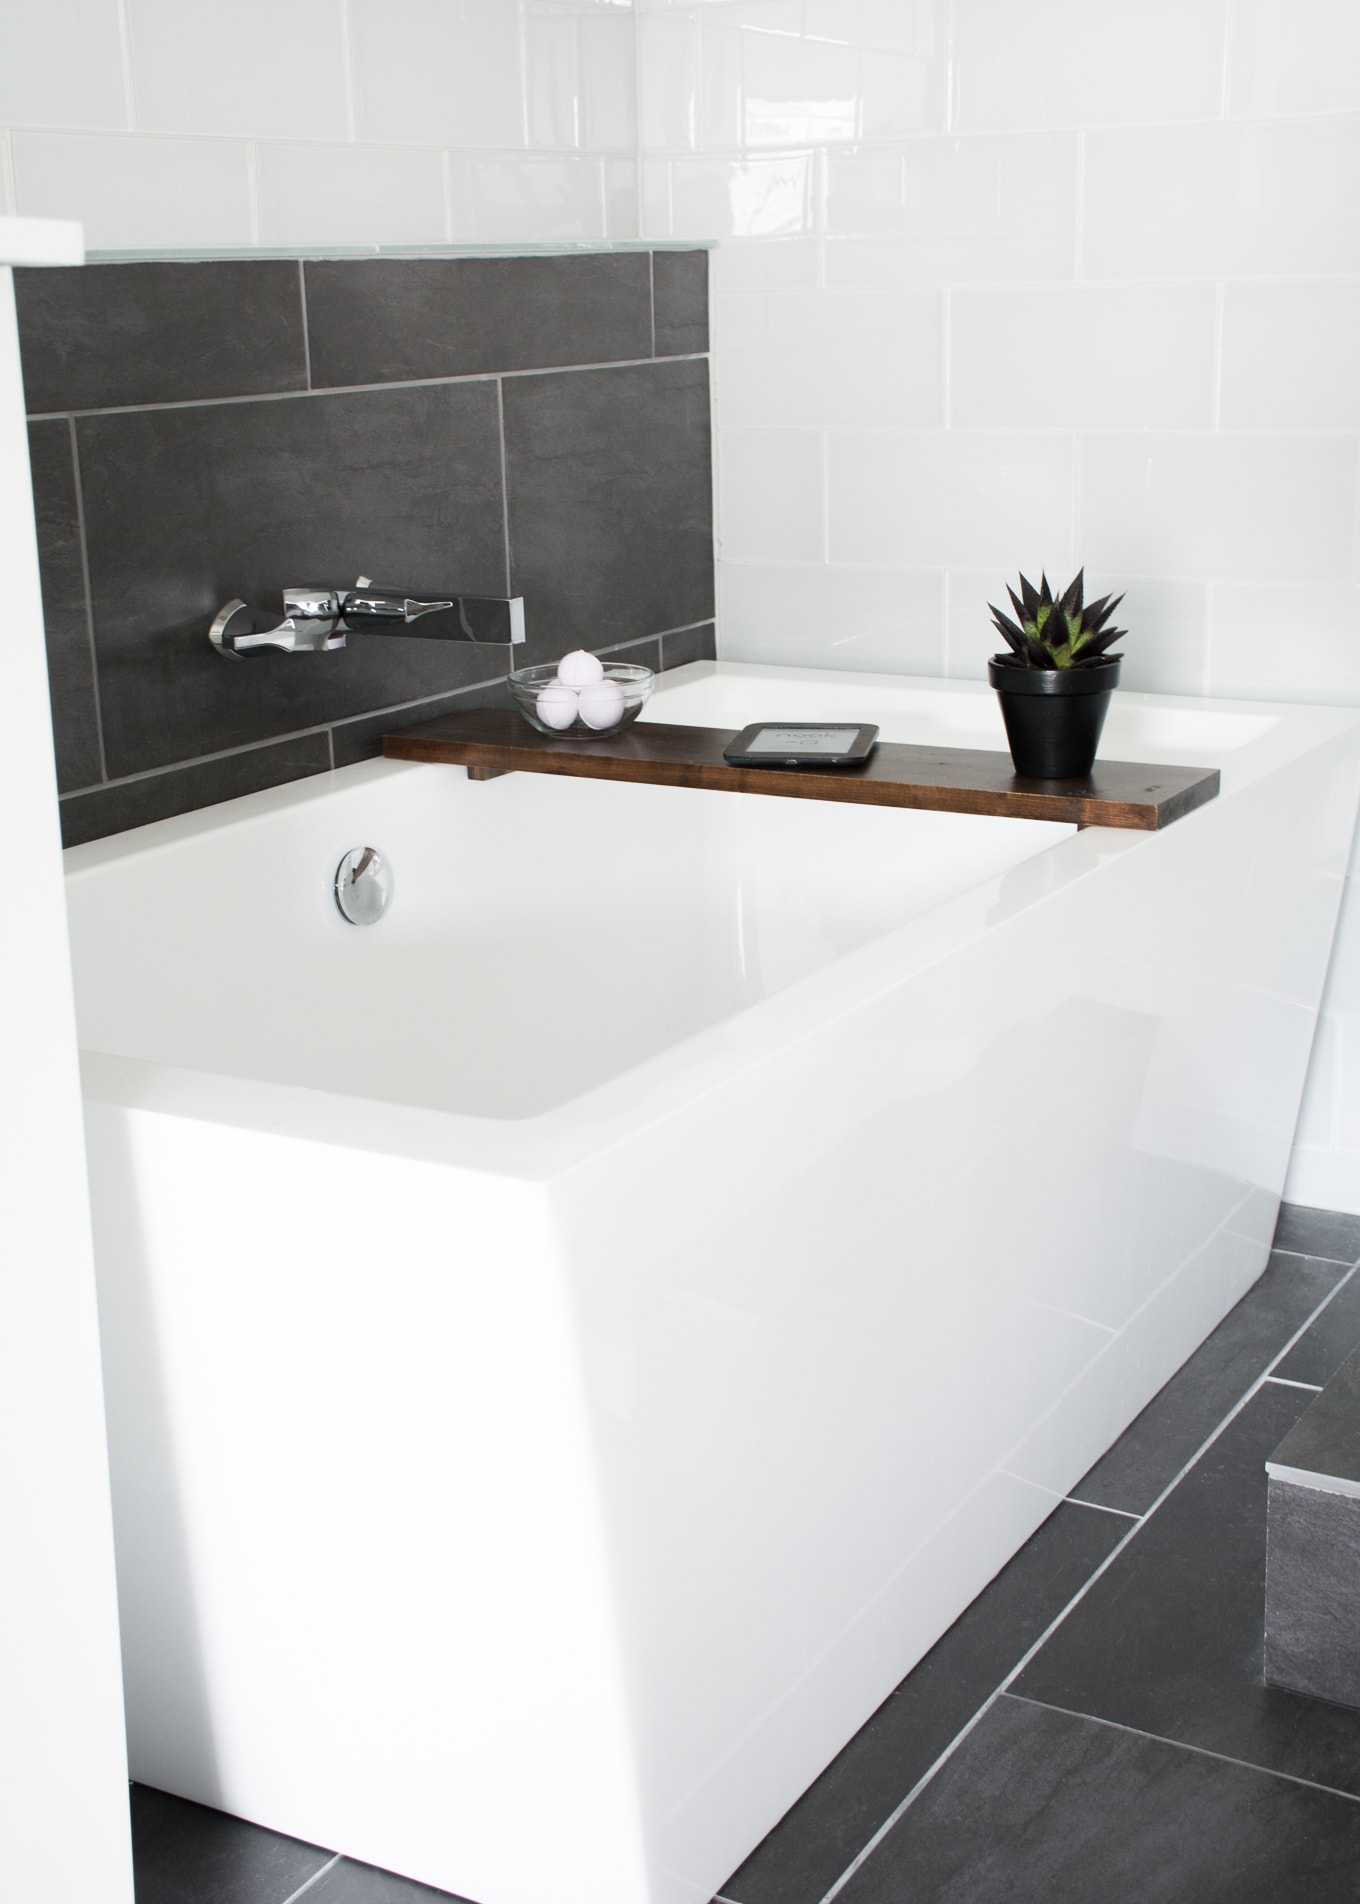 How to build an easy bathtub tray